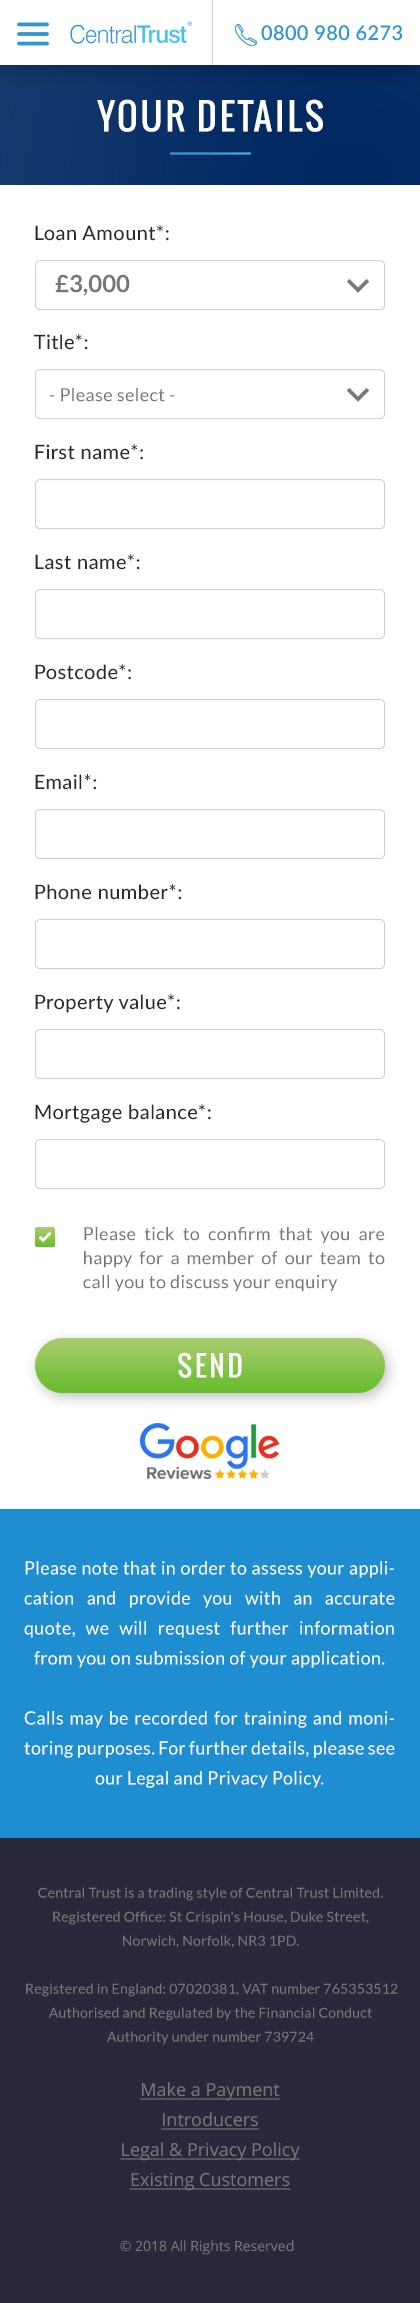 Home Page Banner & Form Application Page - Loan Company